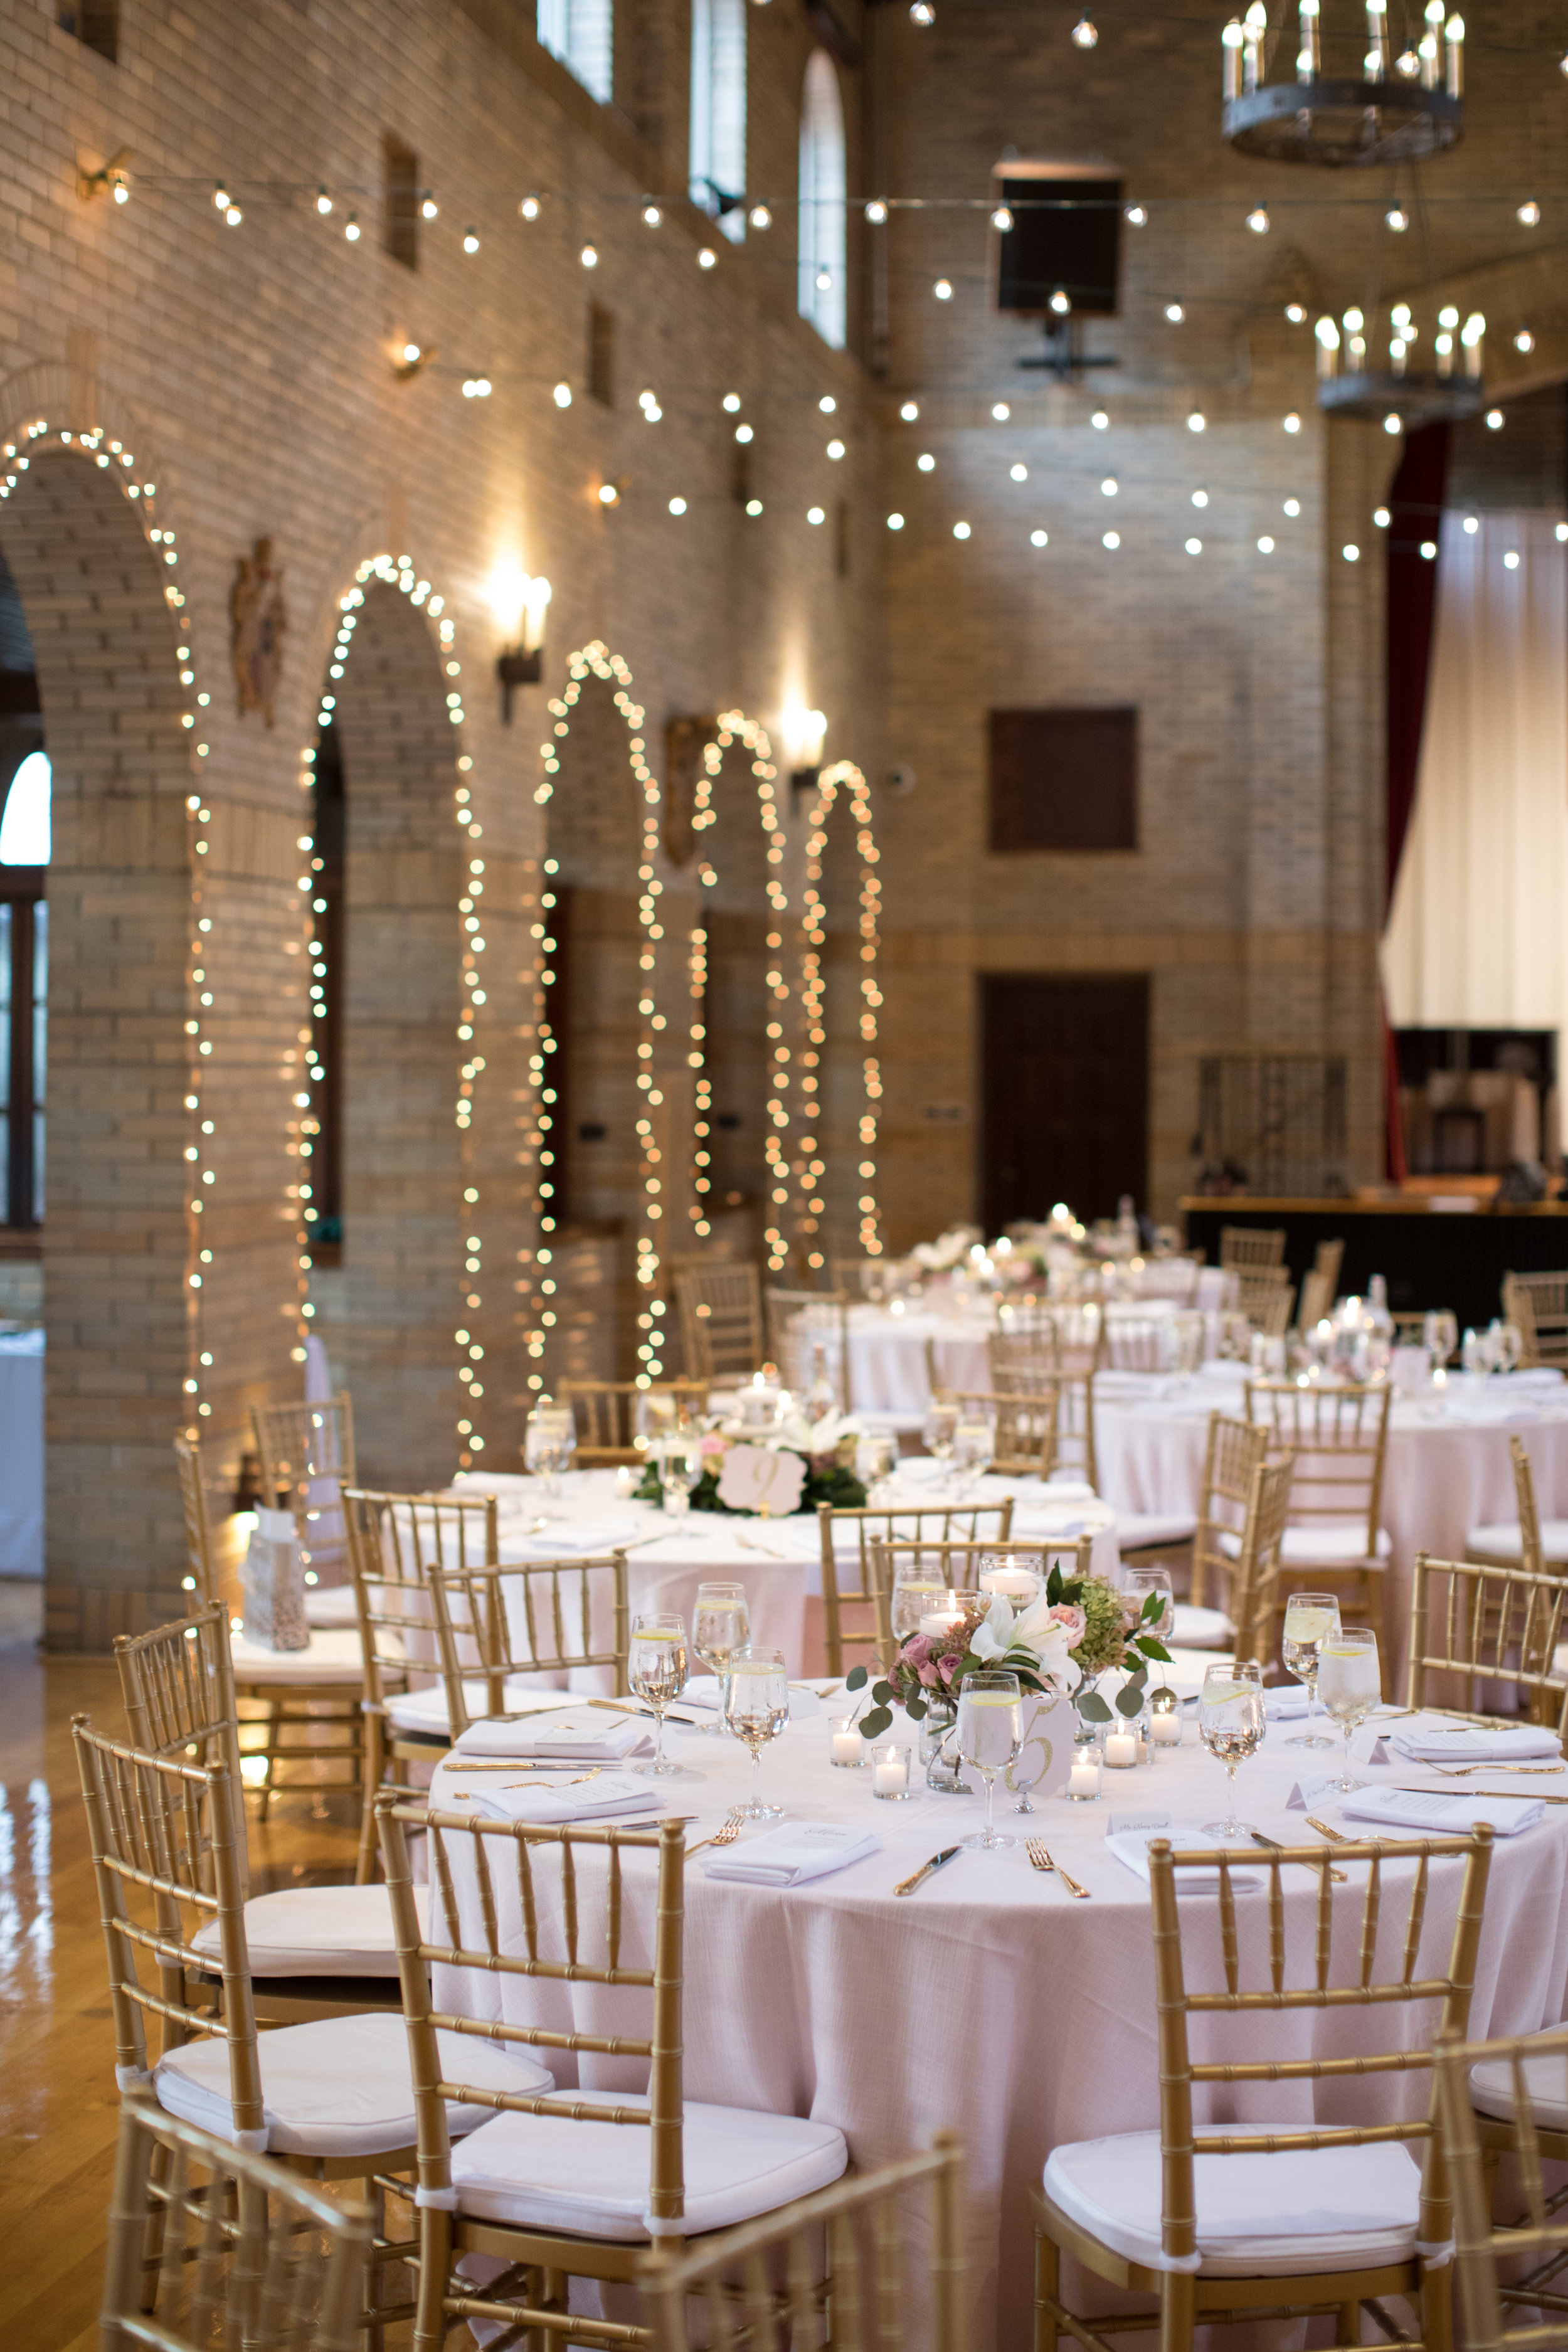 St Francis Hall Washington DC Cream and Blush Wedding Sincerely Pete Events Liz and Ryan Photography